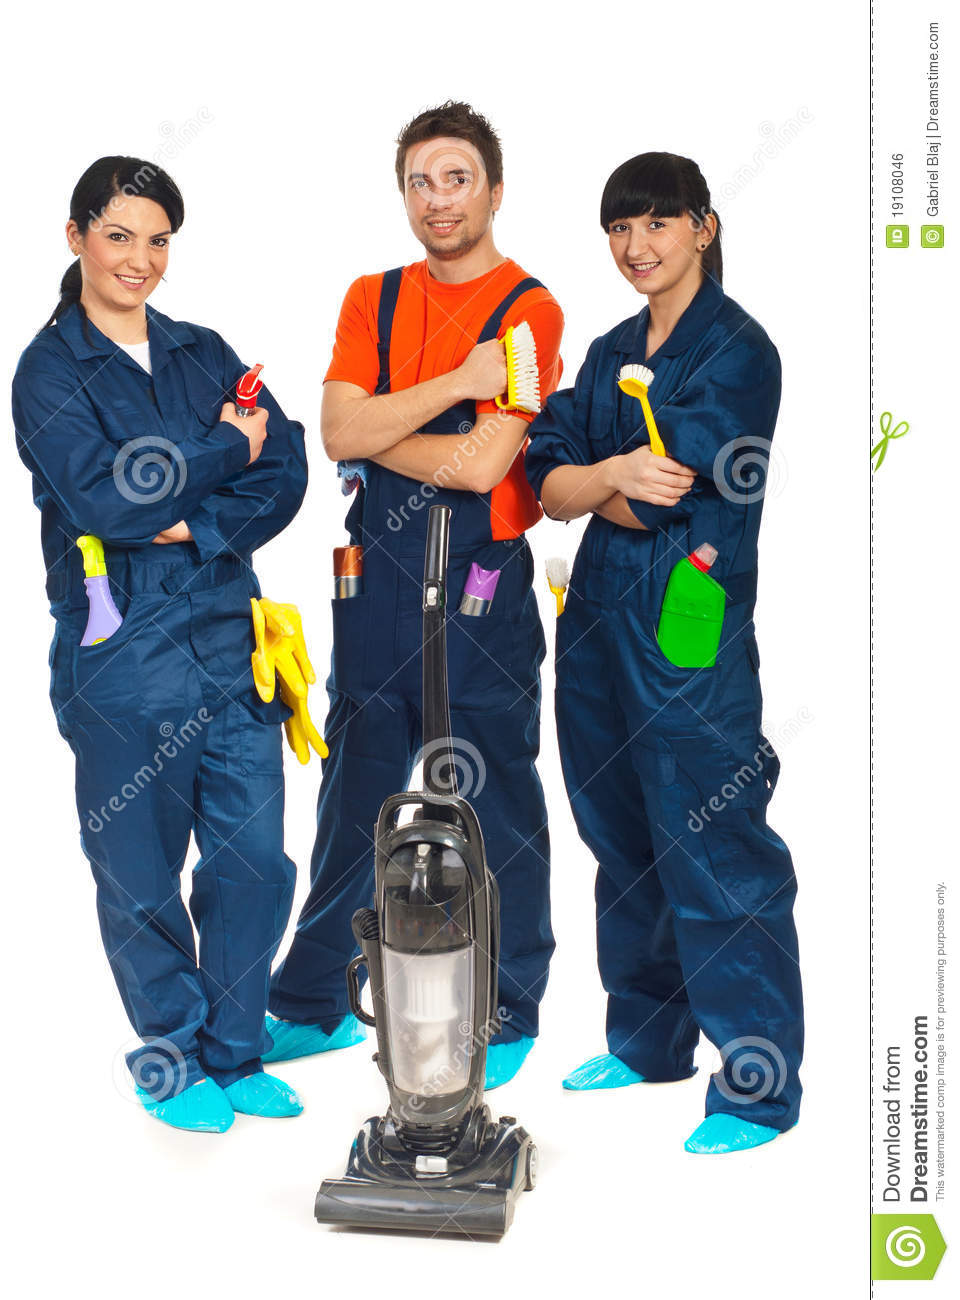 People Cleaning Services : Cleaning service workers team royalty free stock image